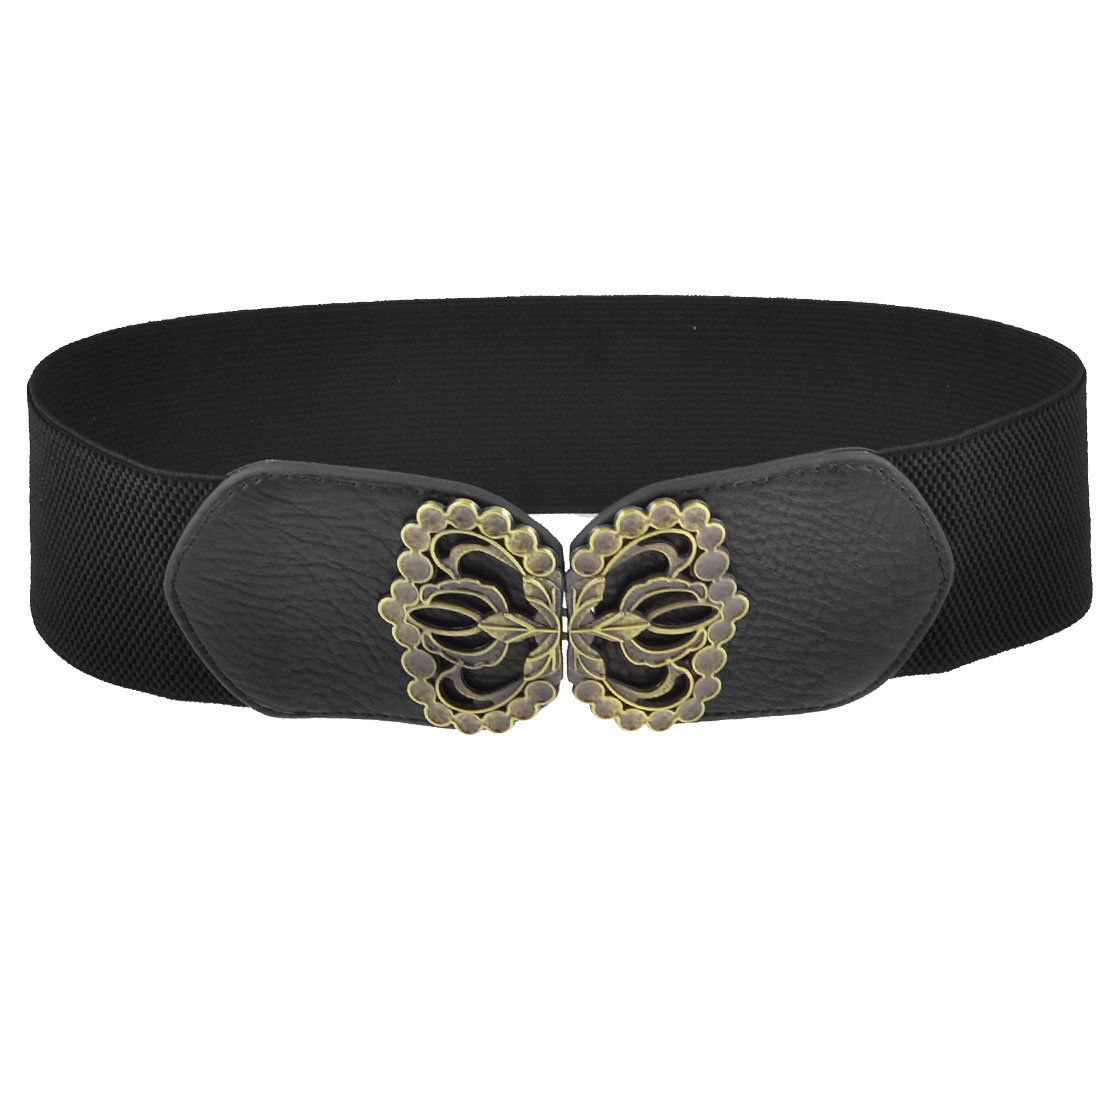 Butterfly Interlocking Buckle Faux Leather Stretch Cinch Waist Belt Black for Ladies